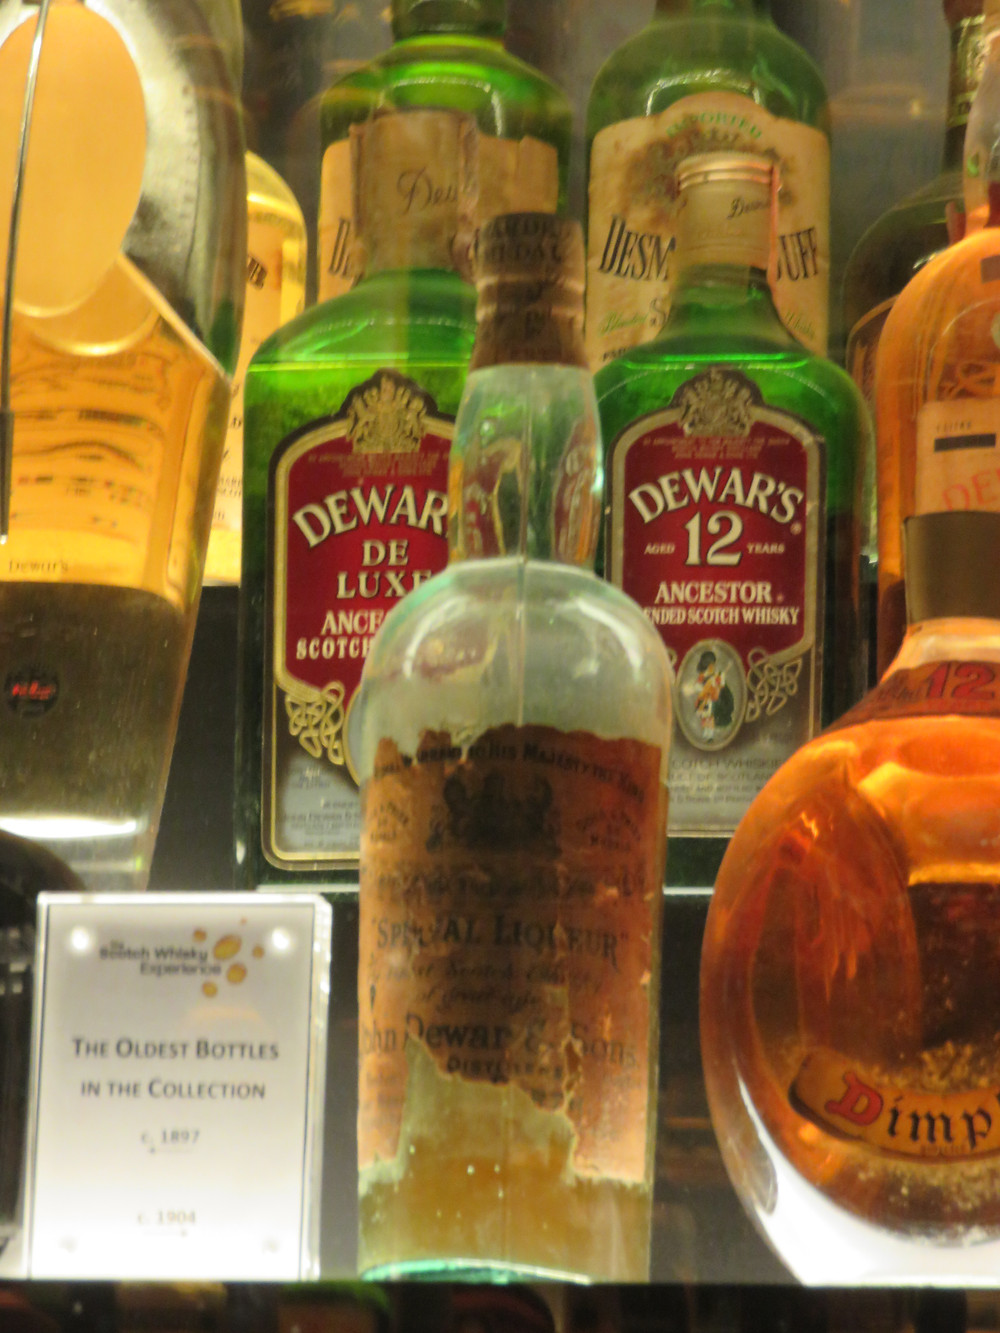 The oldest bottles in the Scotch whisky collection